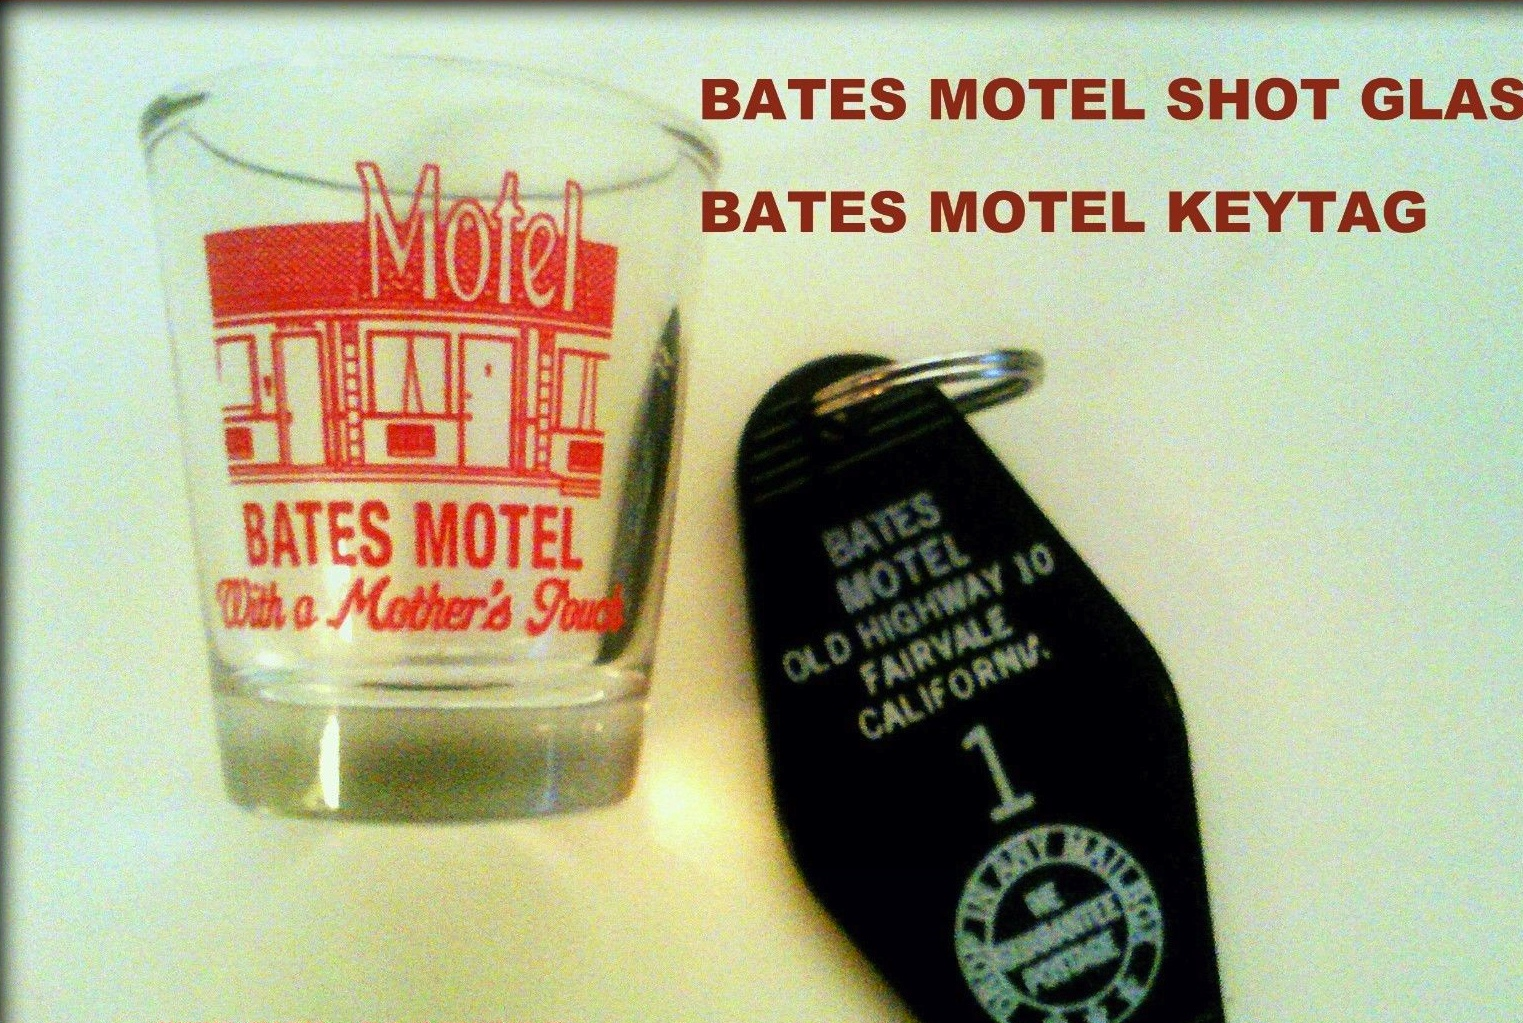 BATES MOTEL SHOT GLASS & KEYTAG